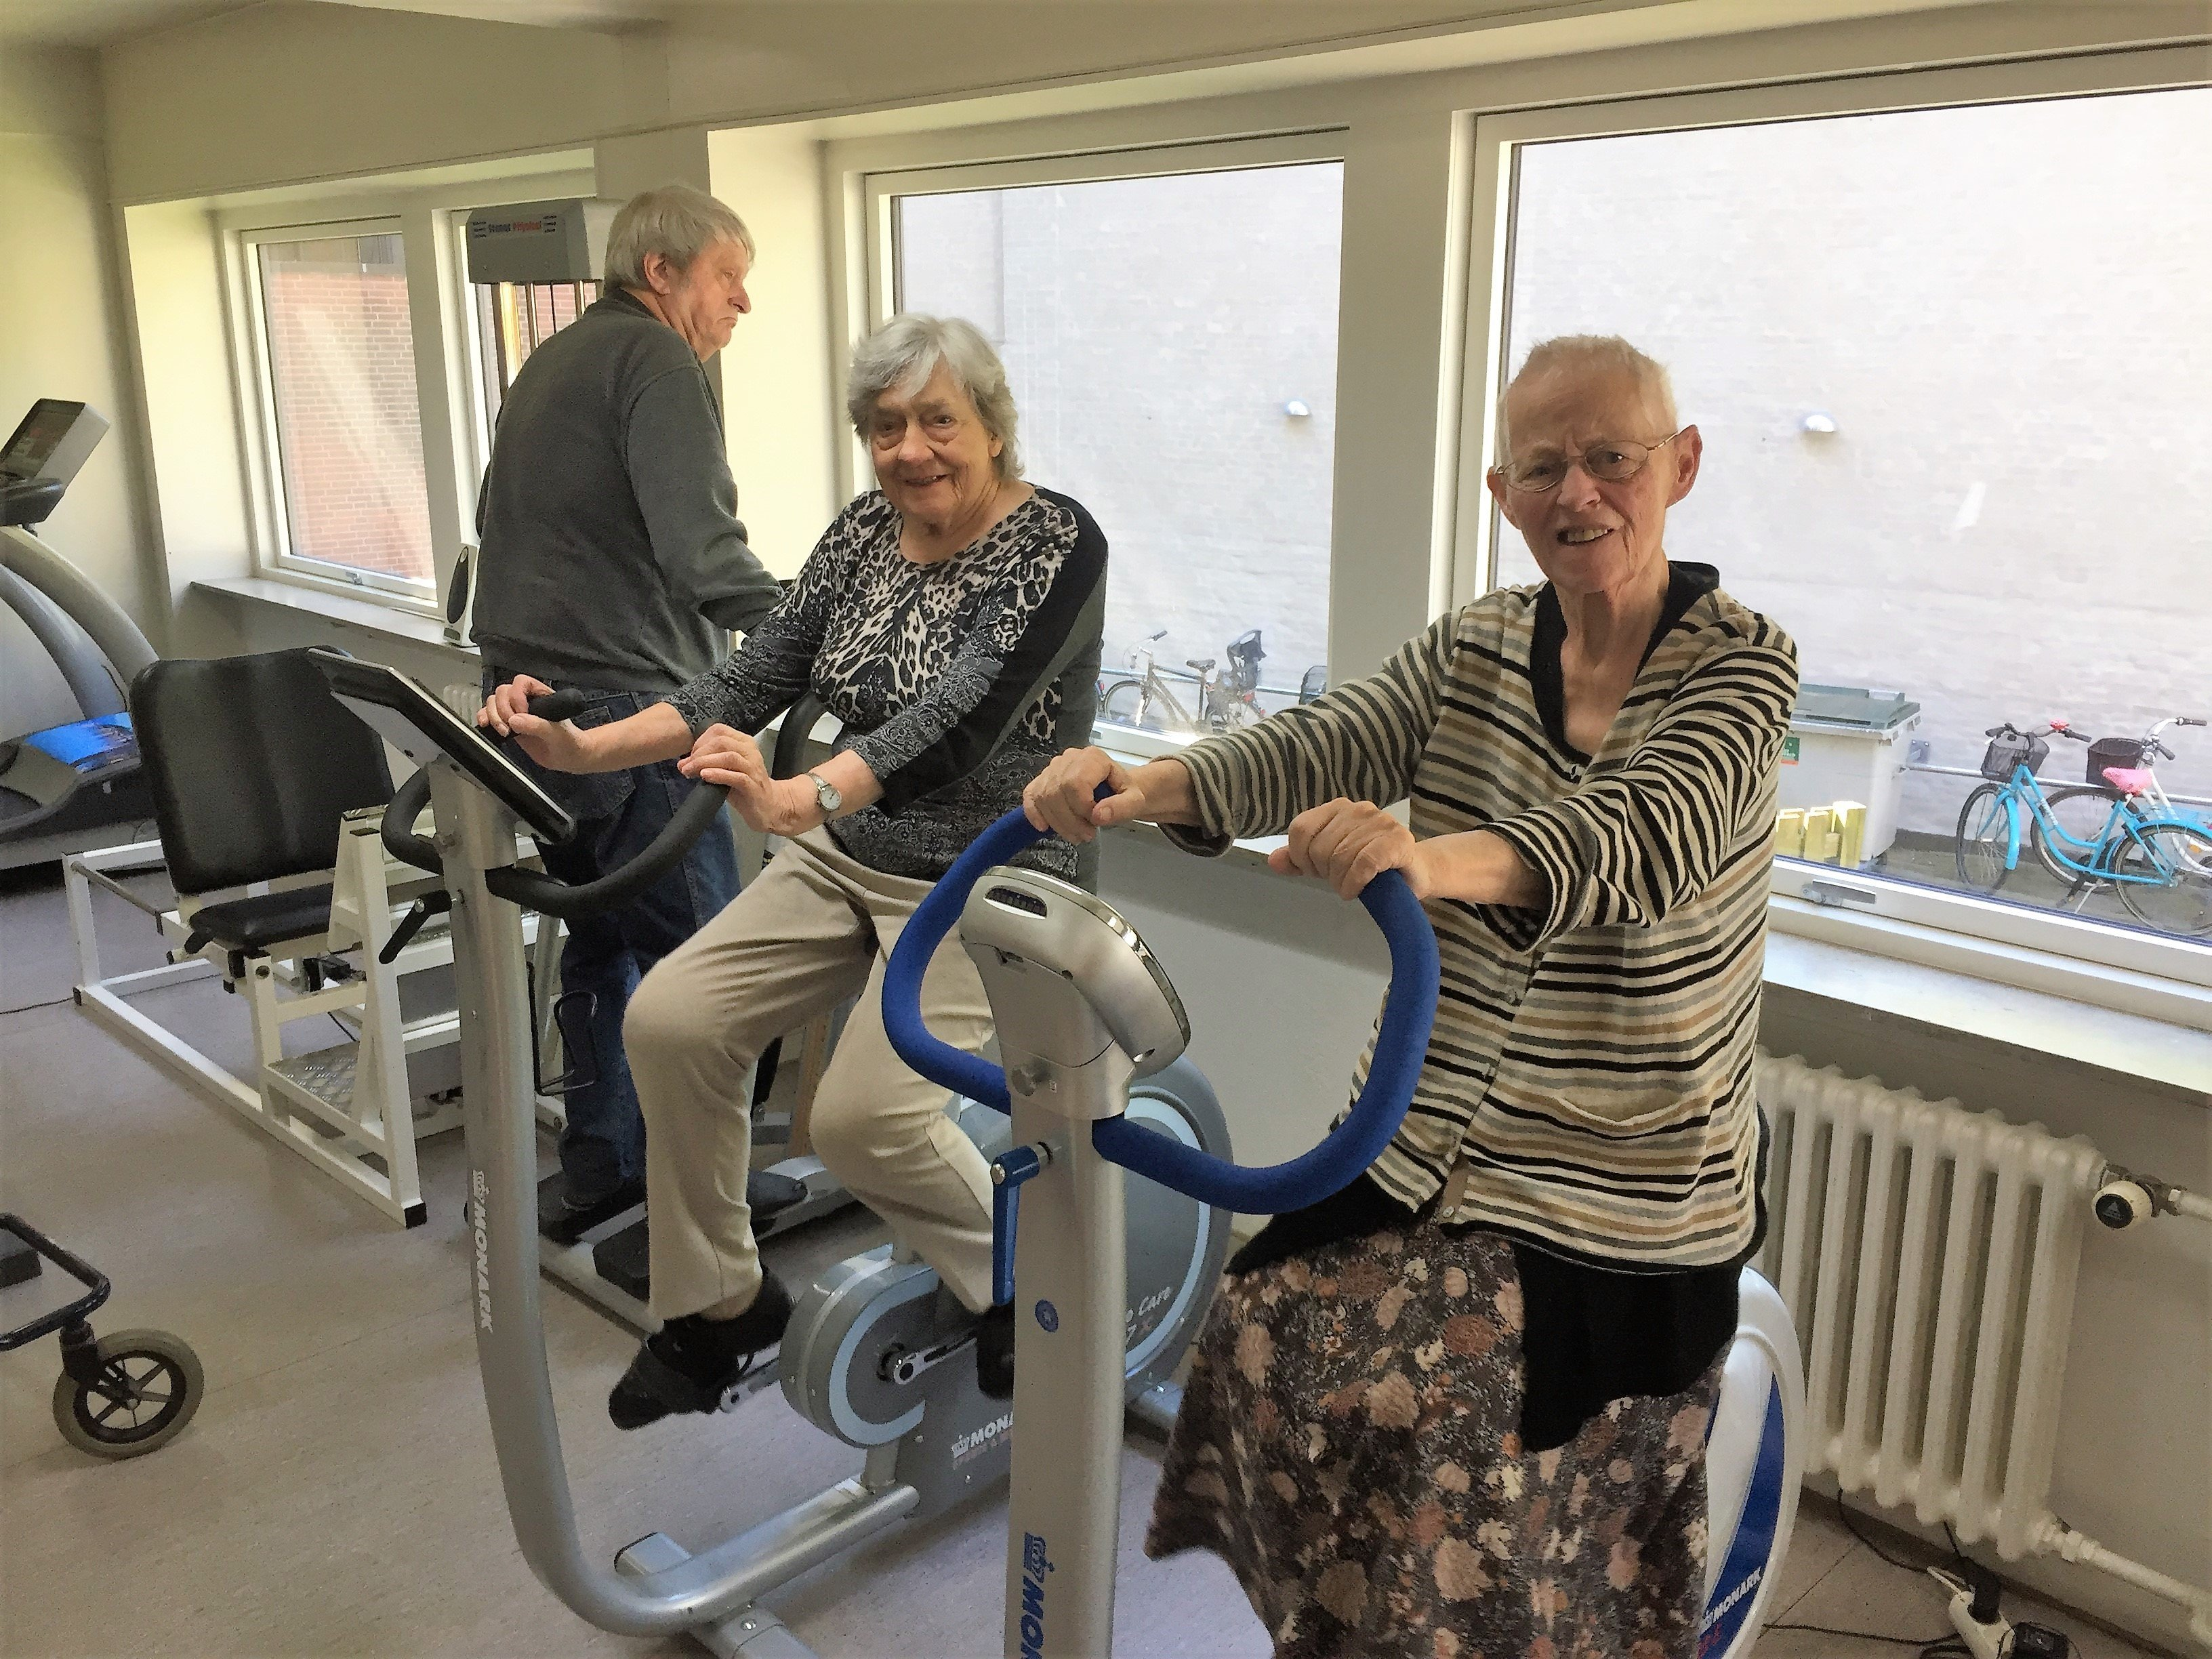 Ella Else og Steen i fitness